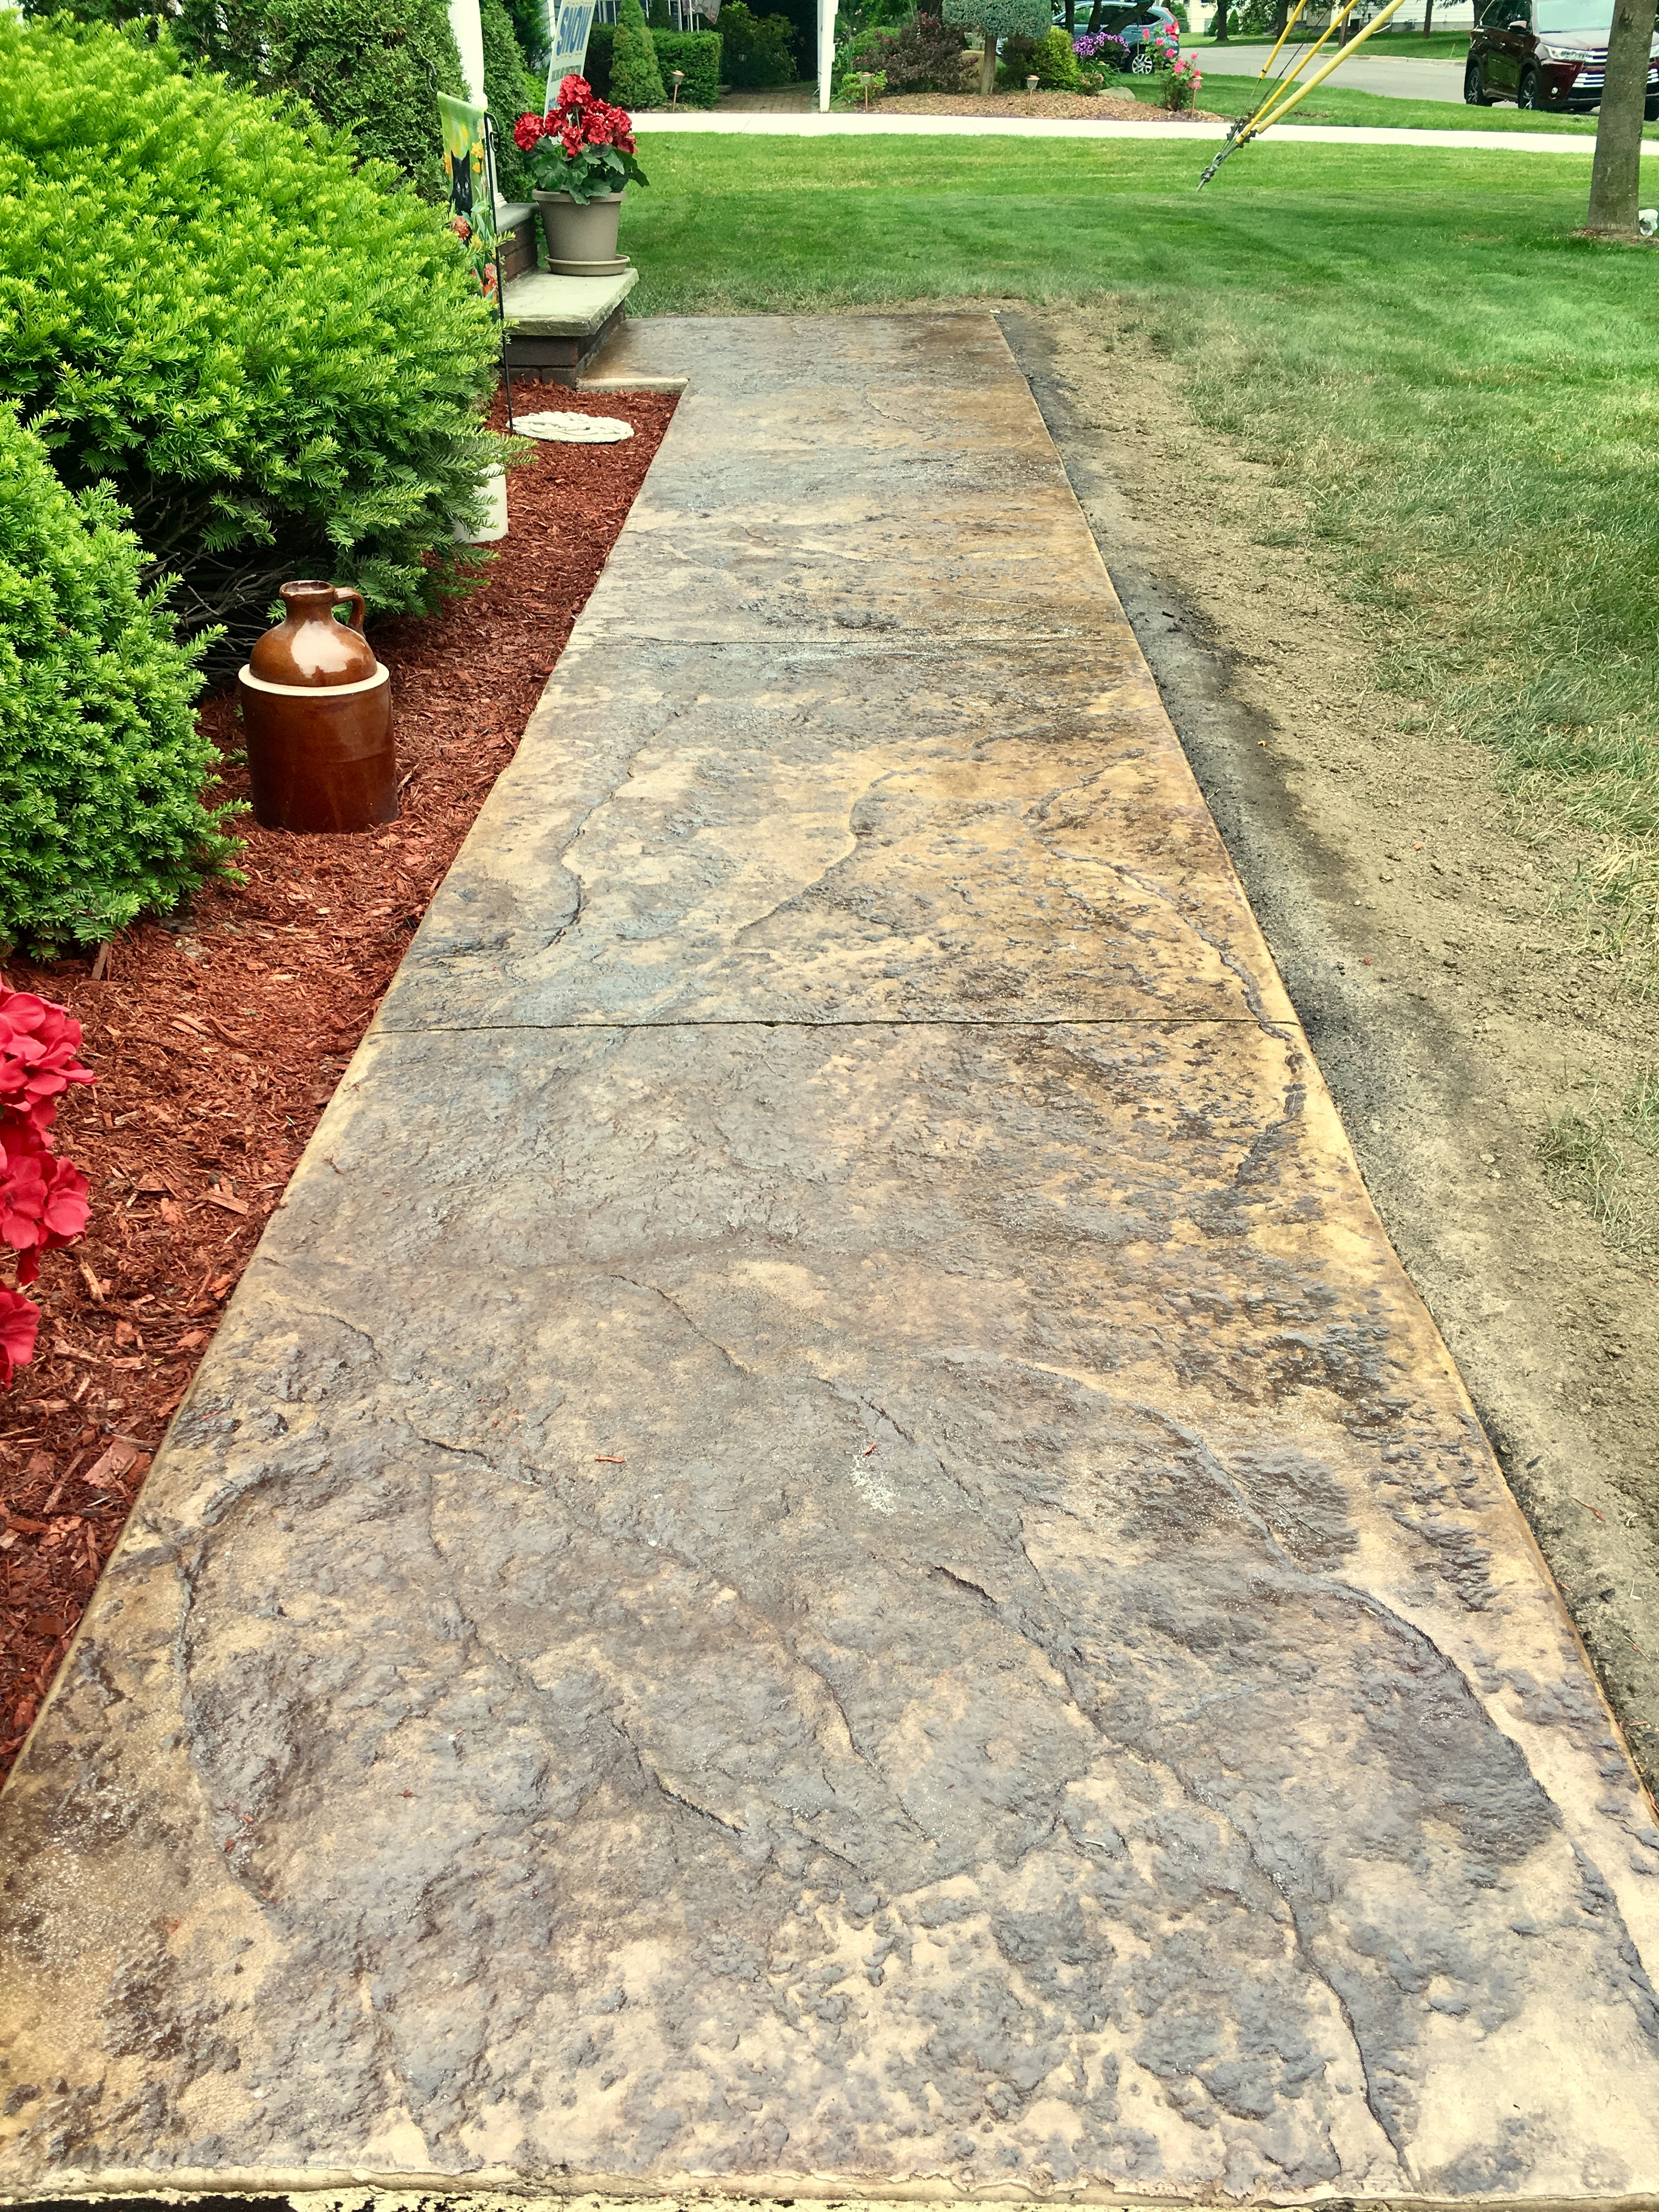 Images Of Stamped Concrete Patios: 5 Simple Techniques For Stamped Concrete